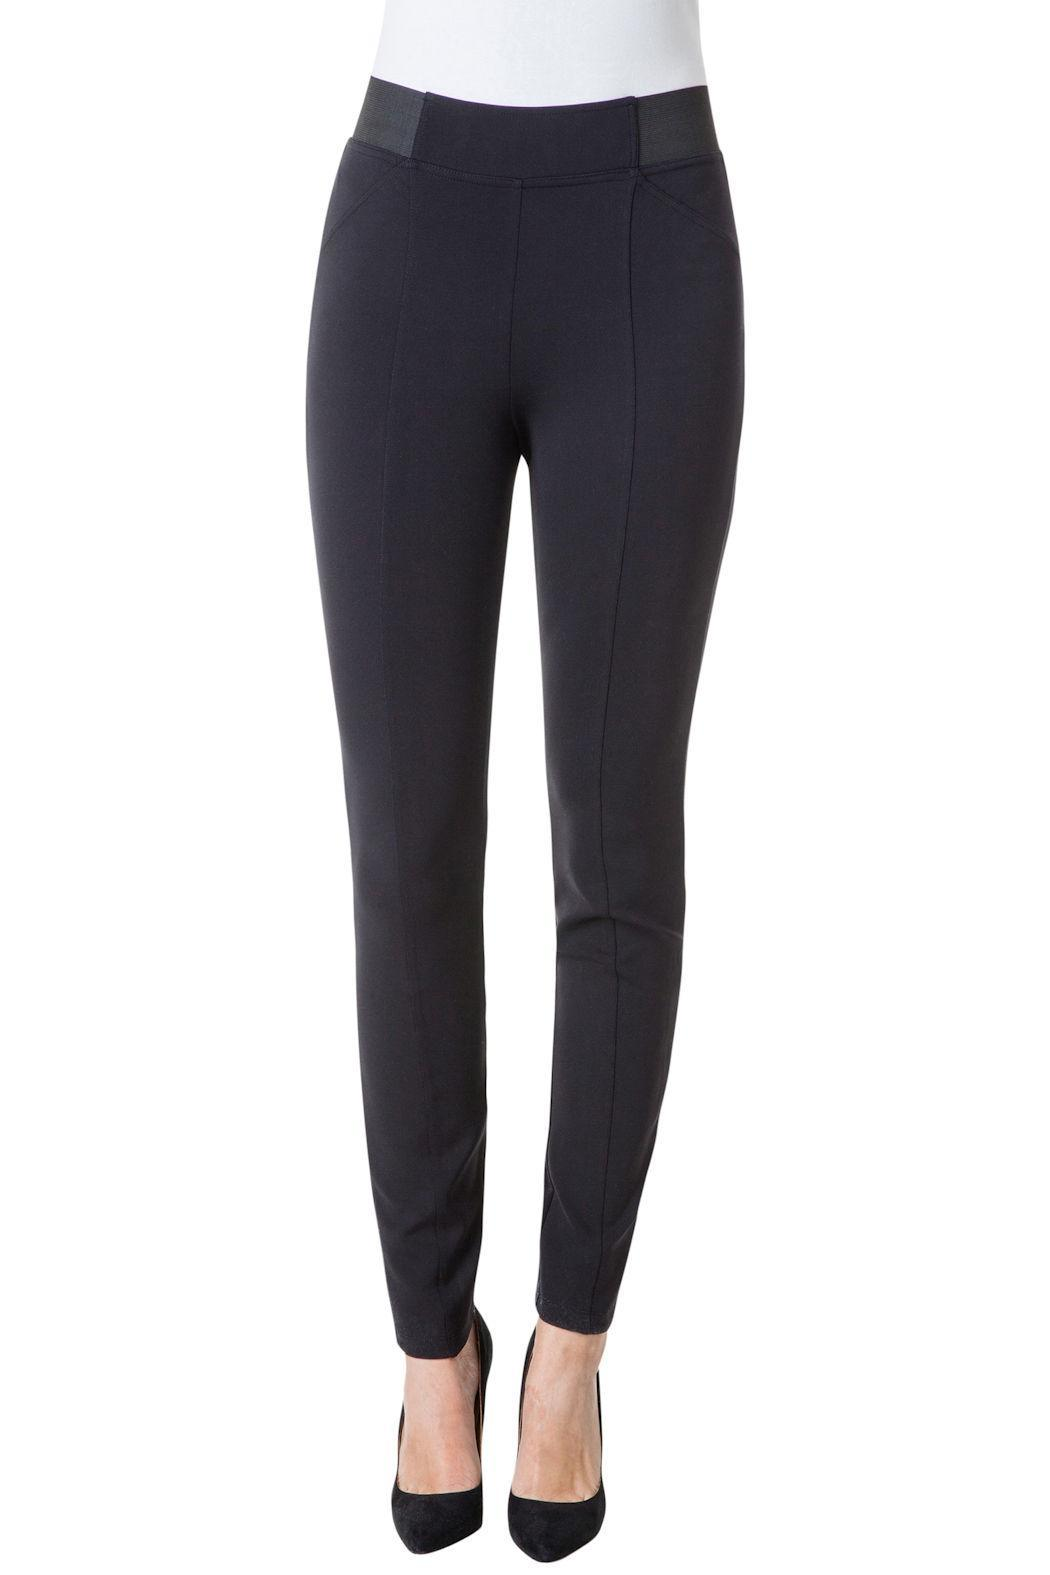 Yest Stretch Pants - Main Image